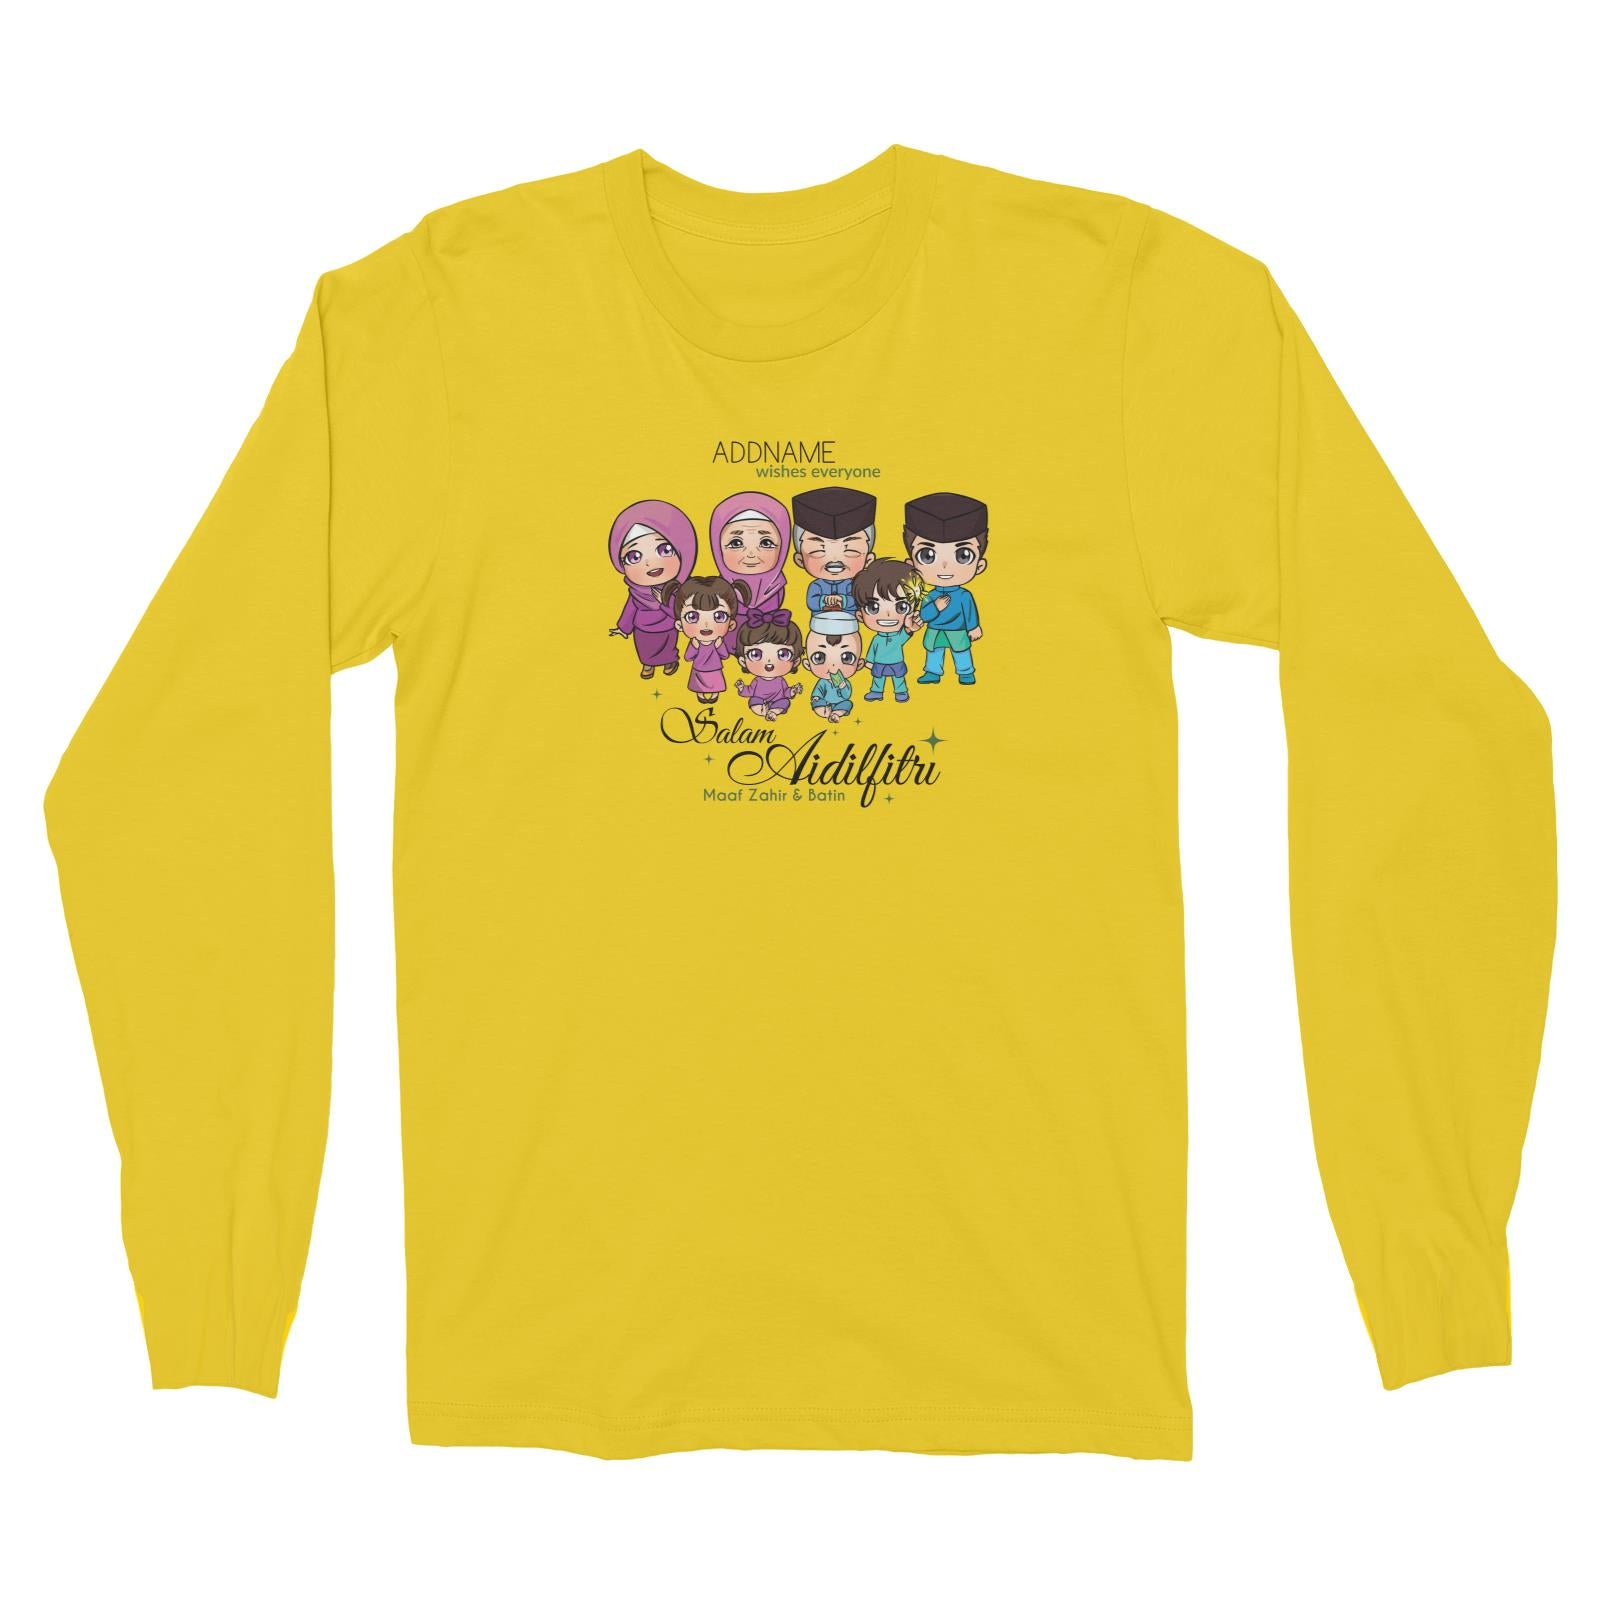 Raya Chibi Big Family Addname Wishes Everyone Salam Aidilfitri Maaf Zahir & Batin Long Sleeve Unisex T-Shirt